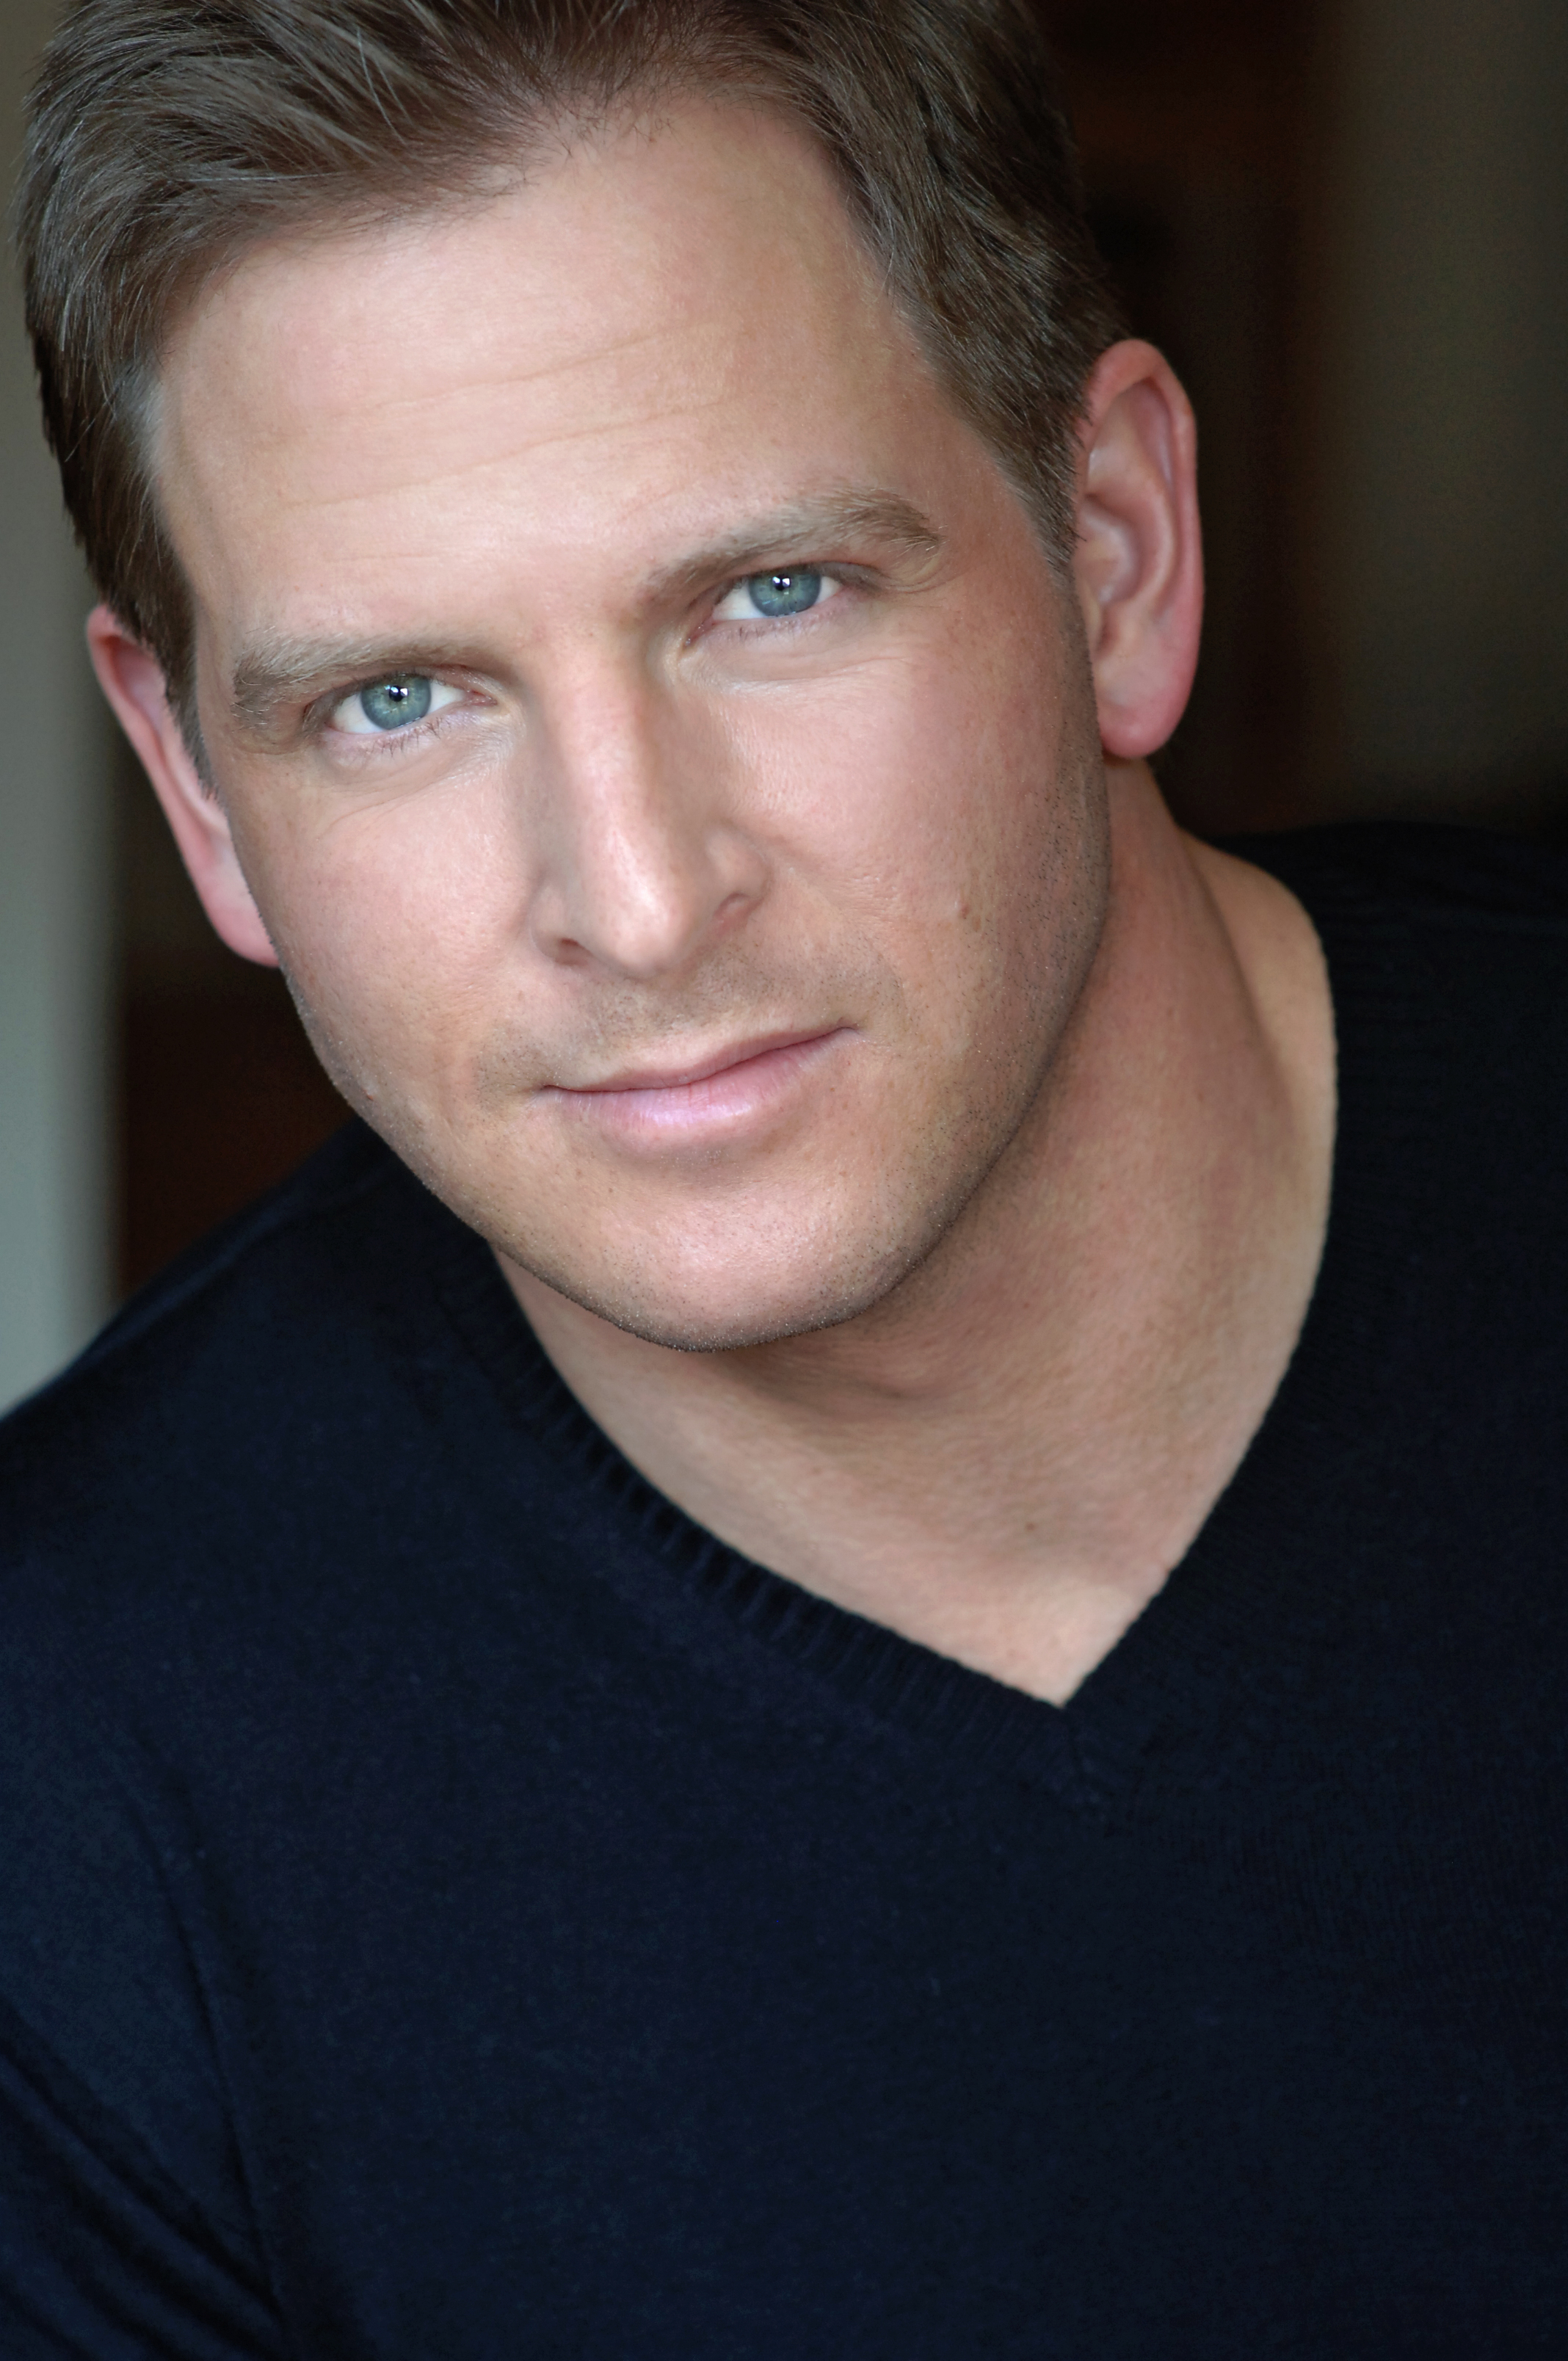 Jason Cameron_HiRes Headshot